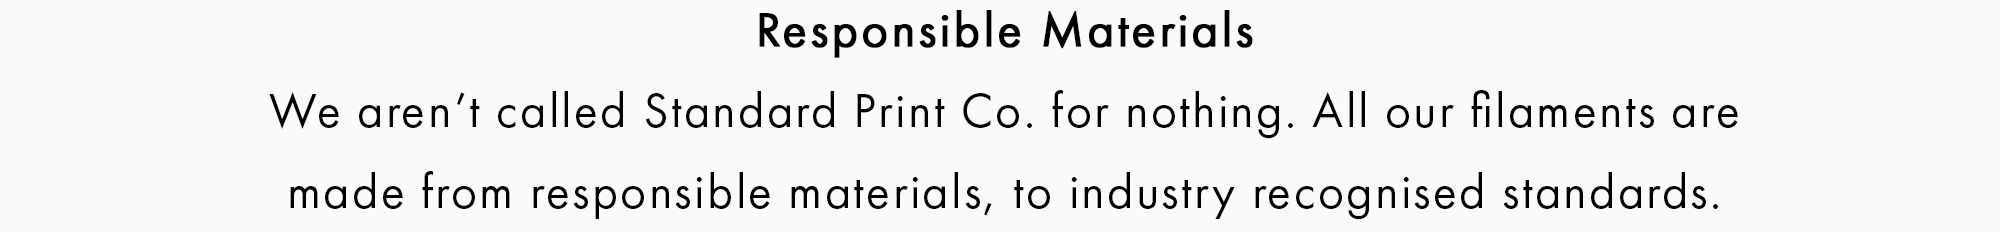 Responsible Materials  We aren't called Standard Print Co. for nothing. All our filaments are  made from responsible materials to globally recognised standards.